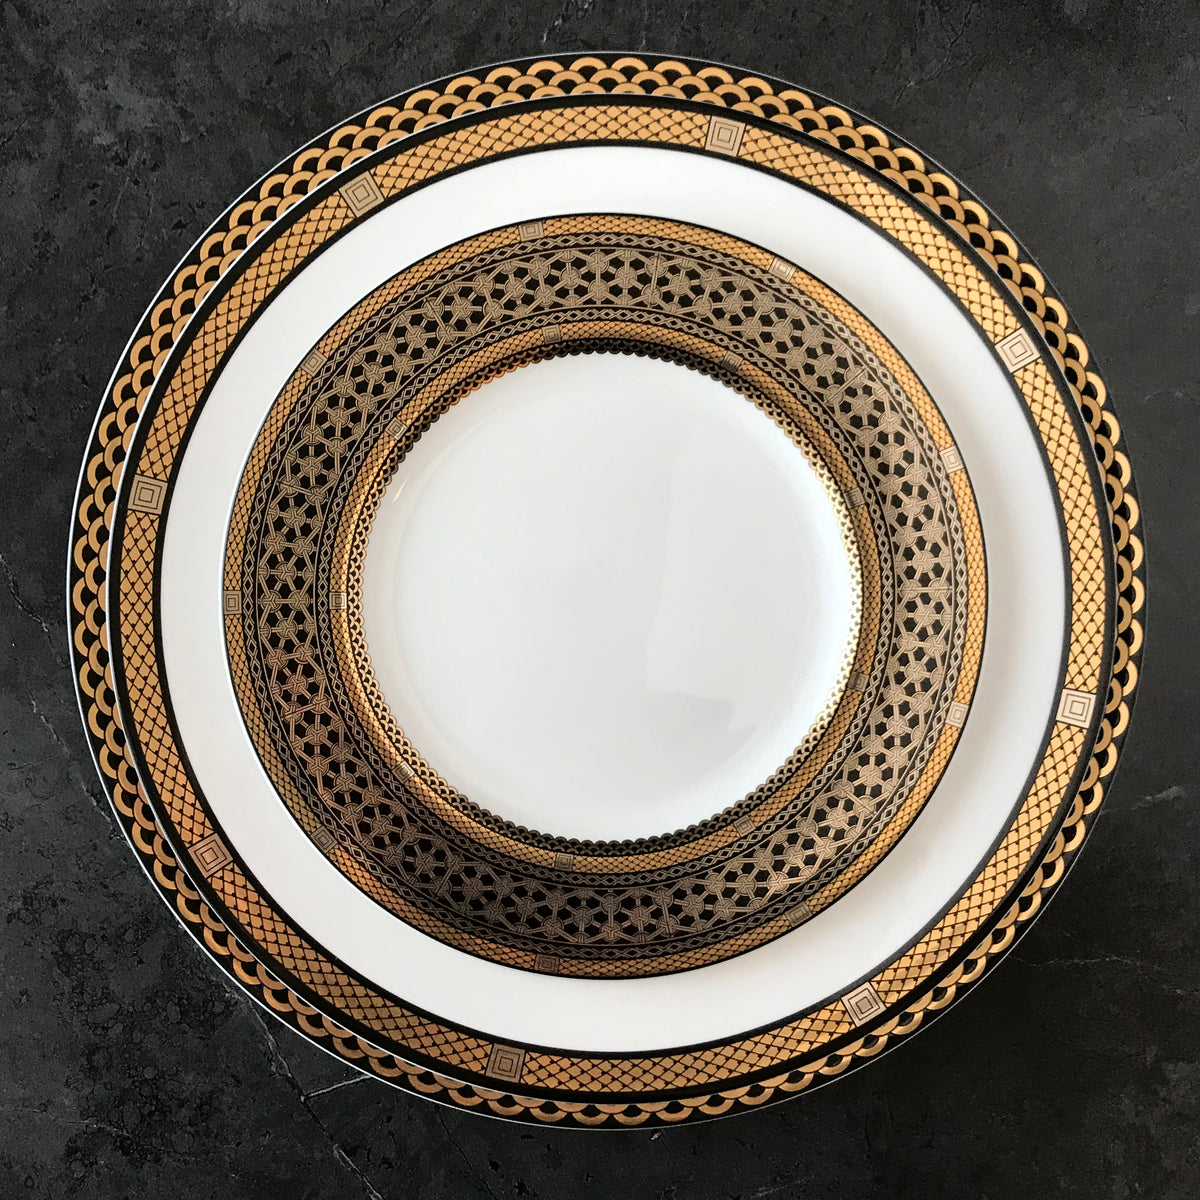 "HAWTHORNE ONYX 10.75"" Bone China Simple Dinner - G/BL/PL - Caskata"